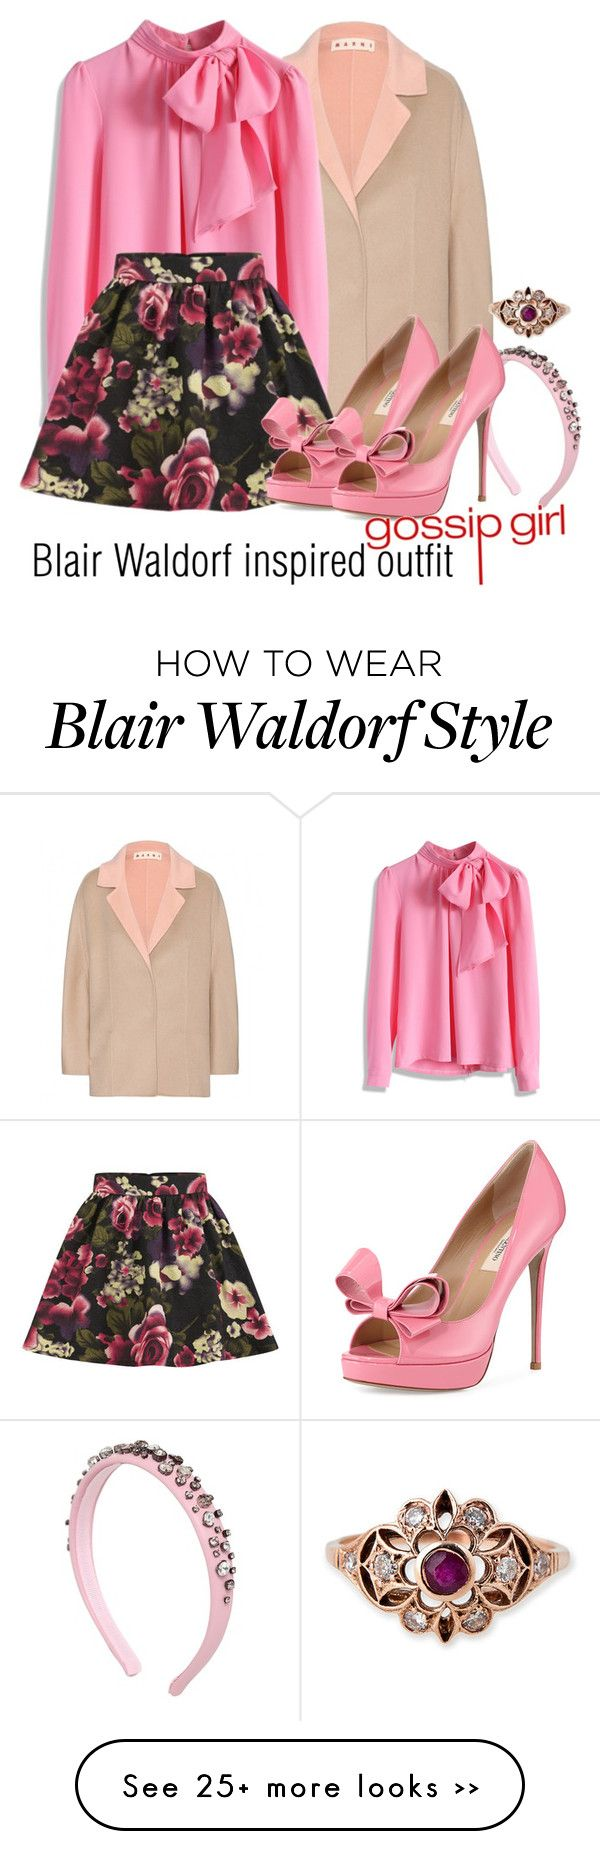 """Blair Waldorf inspired outfit/GG"" by tvdsarahmichele on Polyvore"